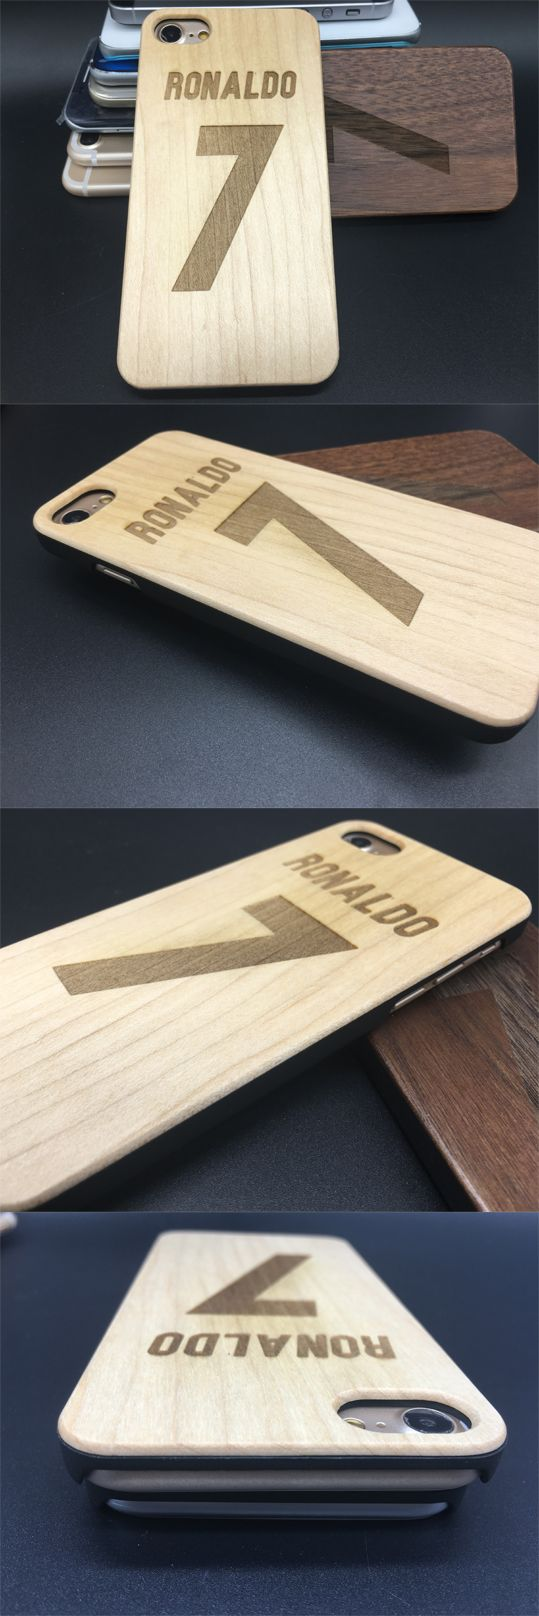 Shop page: www.jiacase.com Personalized engraving Monogram one phone cases,NFL,NHL,Soccer jersey,NBA jerseys.name and number on wood phone case for iPhone 7/7plus,6/6S/6Splus,5/5s/5se,etc #Ronaldo #7 #CR7 #real madrid #jersey #soccer #football #wooden #ca